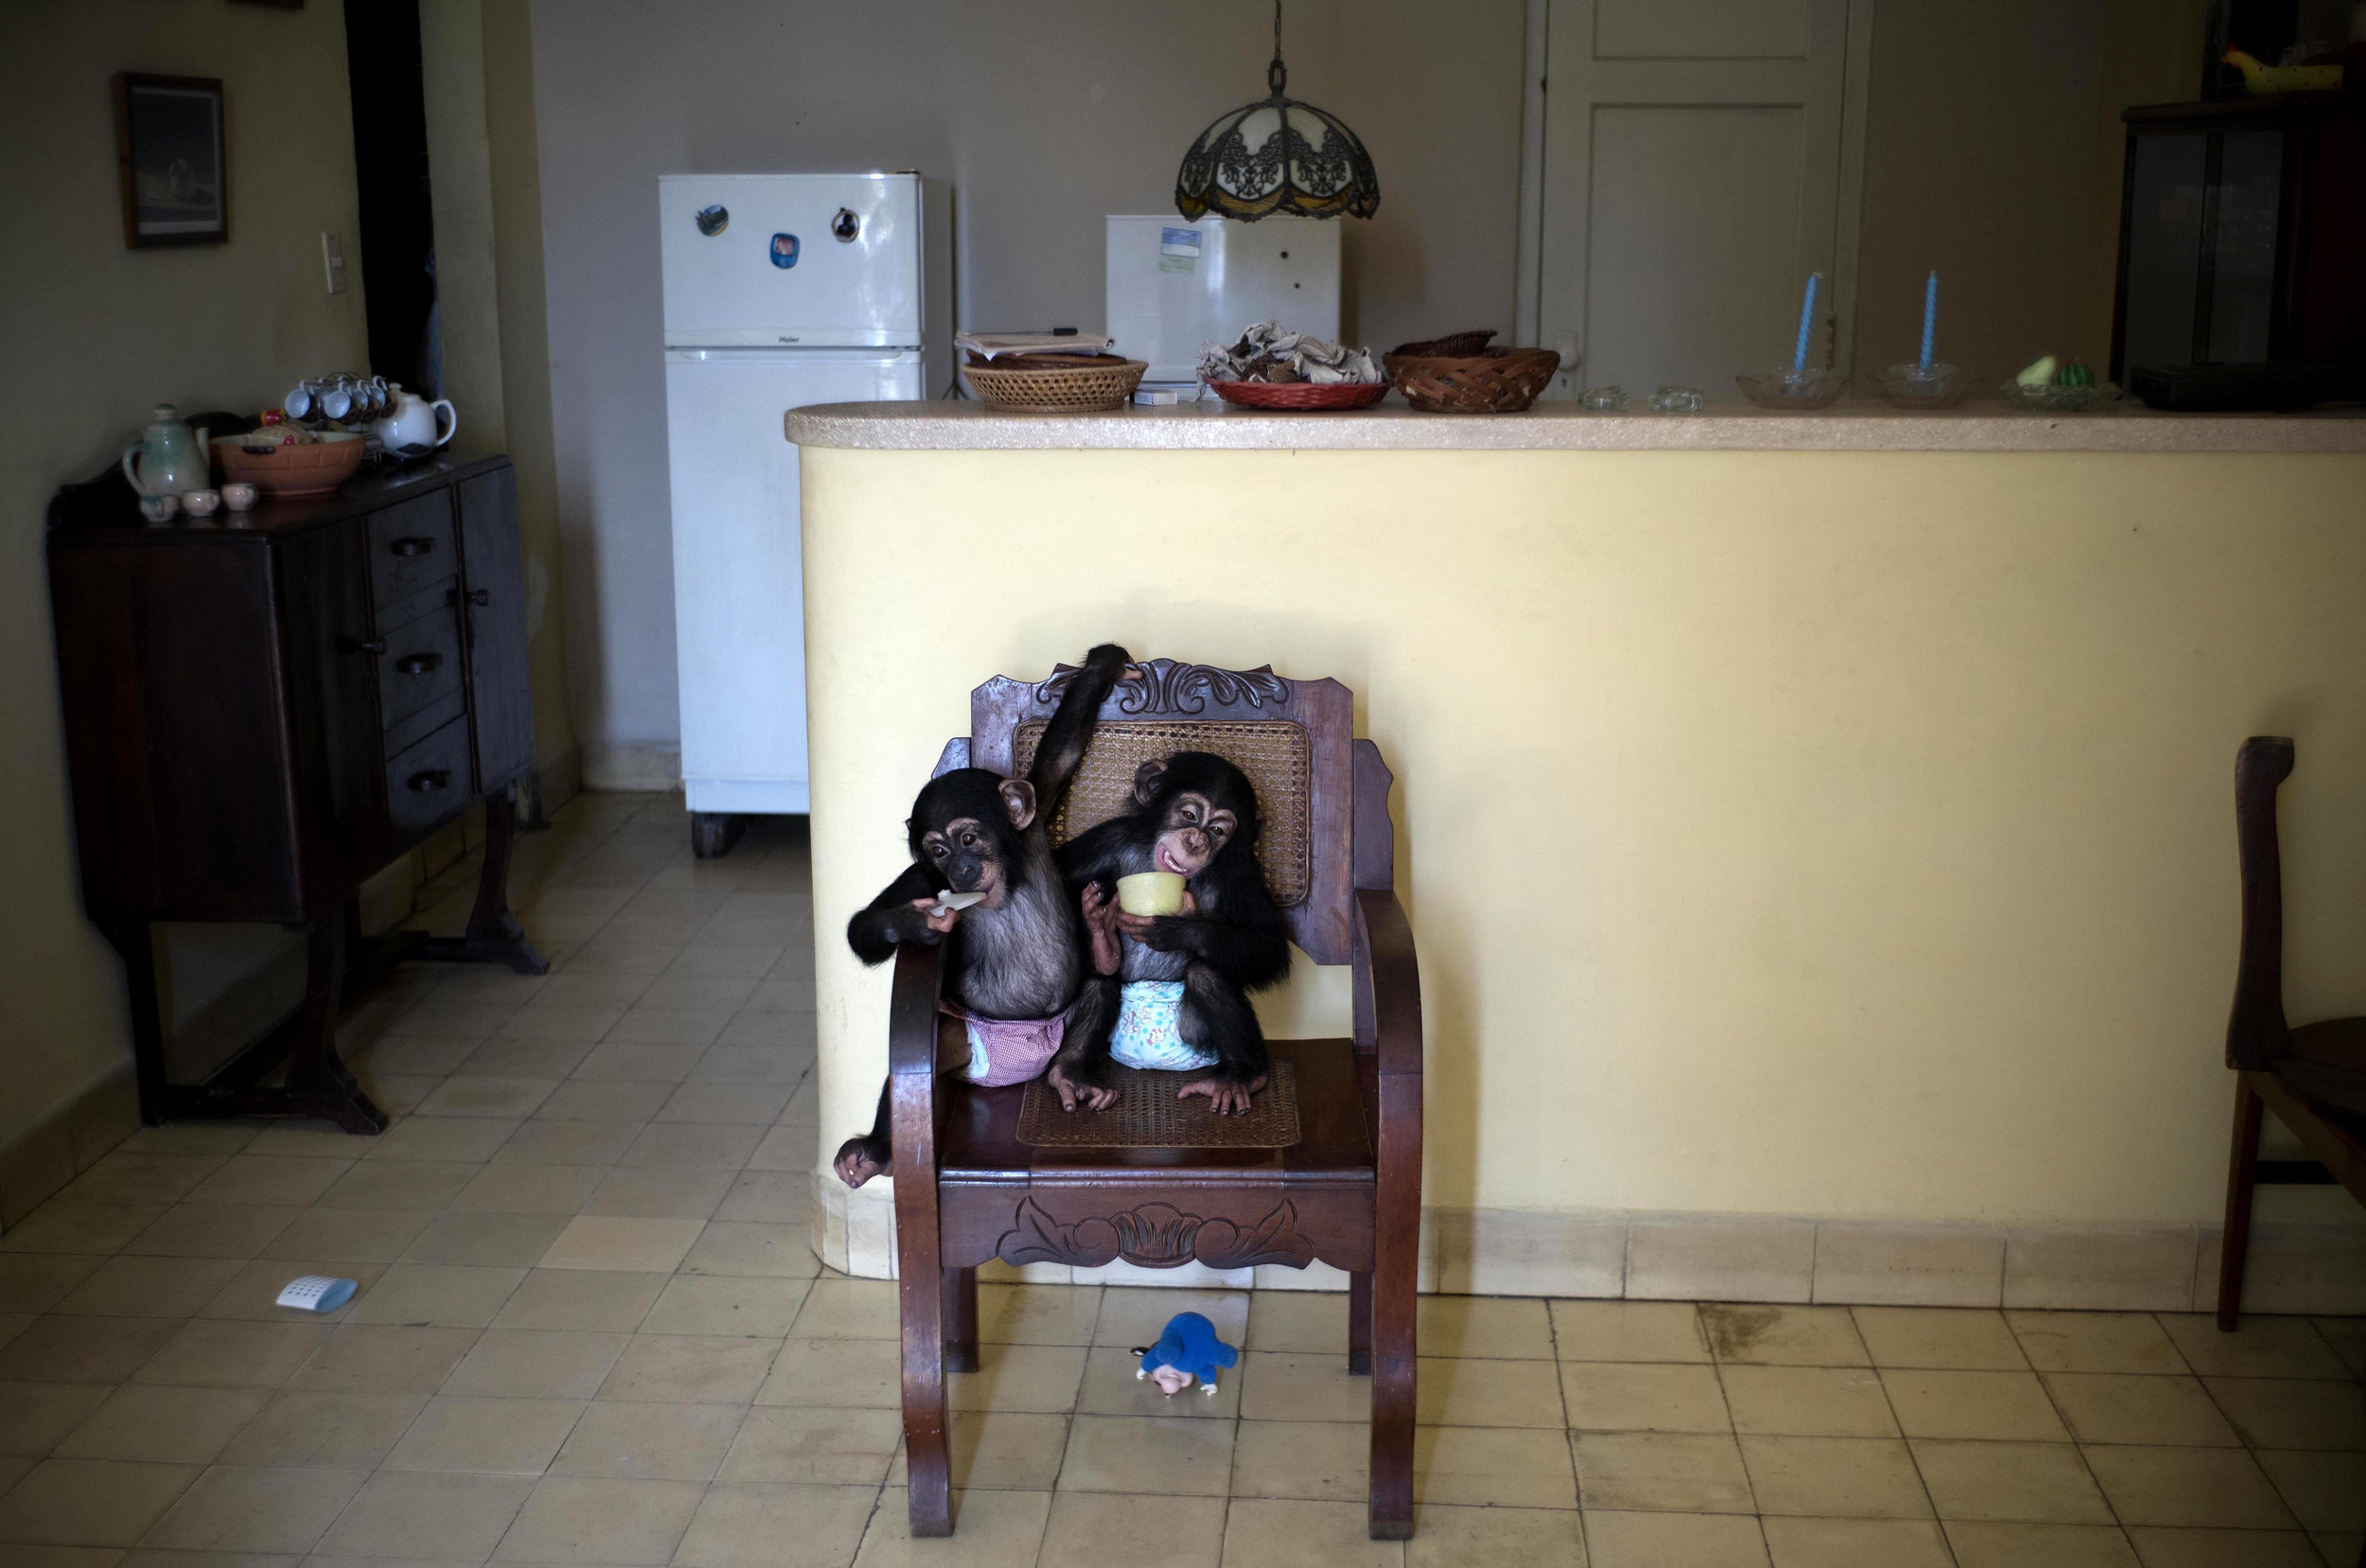 In this April 4, 2017 photo, baby chimpanzee Anuma II, left, and Ada rest in a chair at zoologist Marta Llanes' apartment in Havana, Cuba. Llanes' apartment looks like any that's home to two infants, albeit infants able to scramble up chairs, tables and virtually any other object with already-strong arms and legs and feet with opposable thumbs. (AP Photo/Ramon Espinosa)